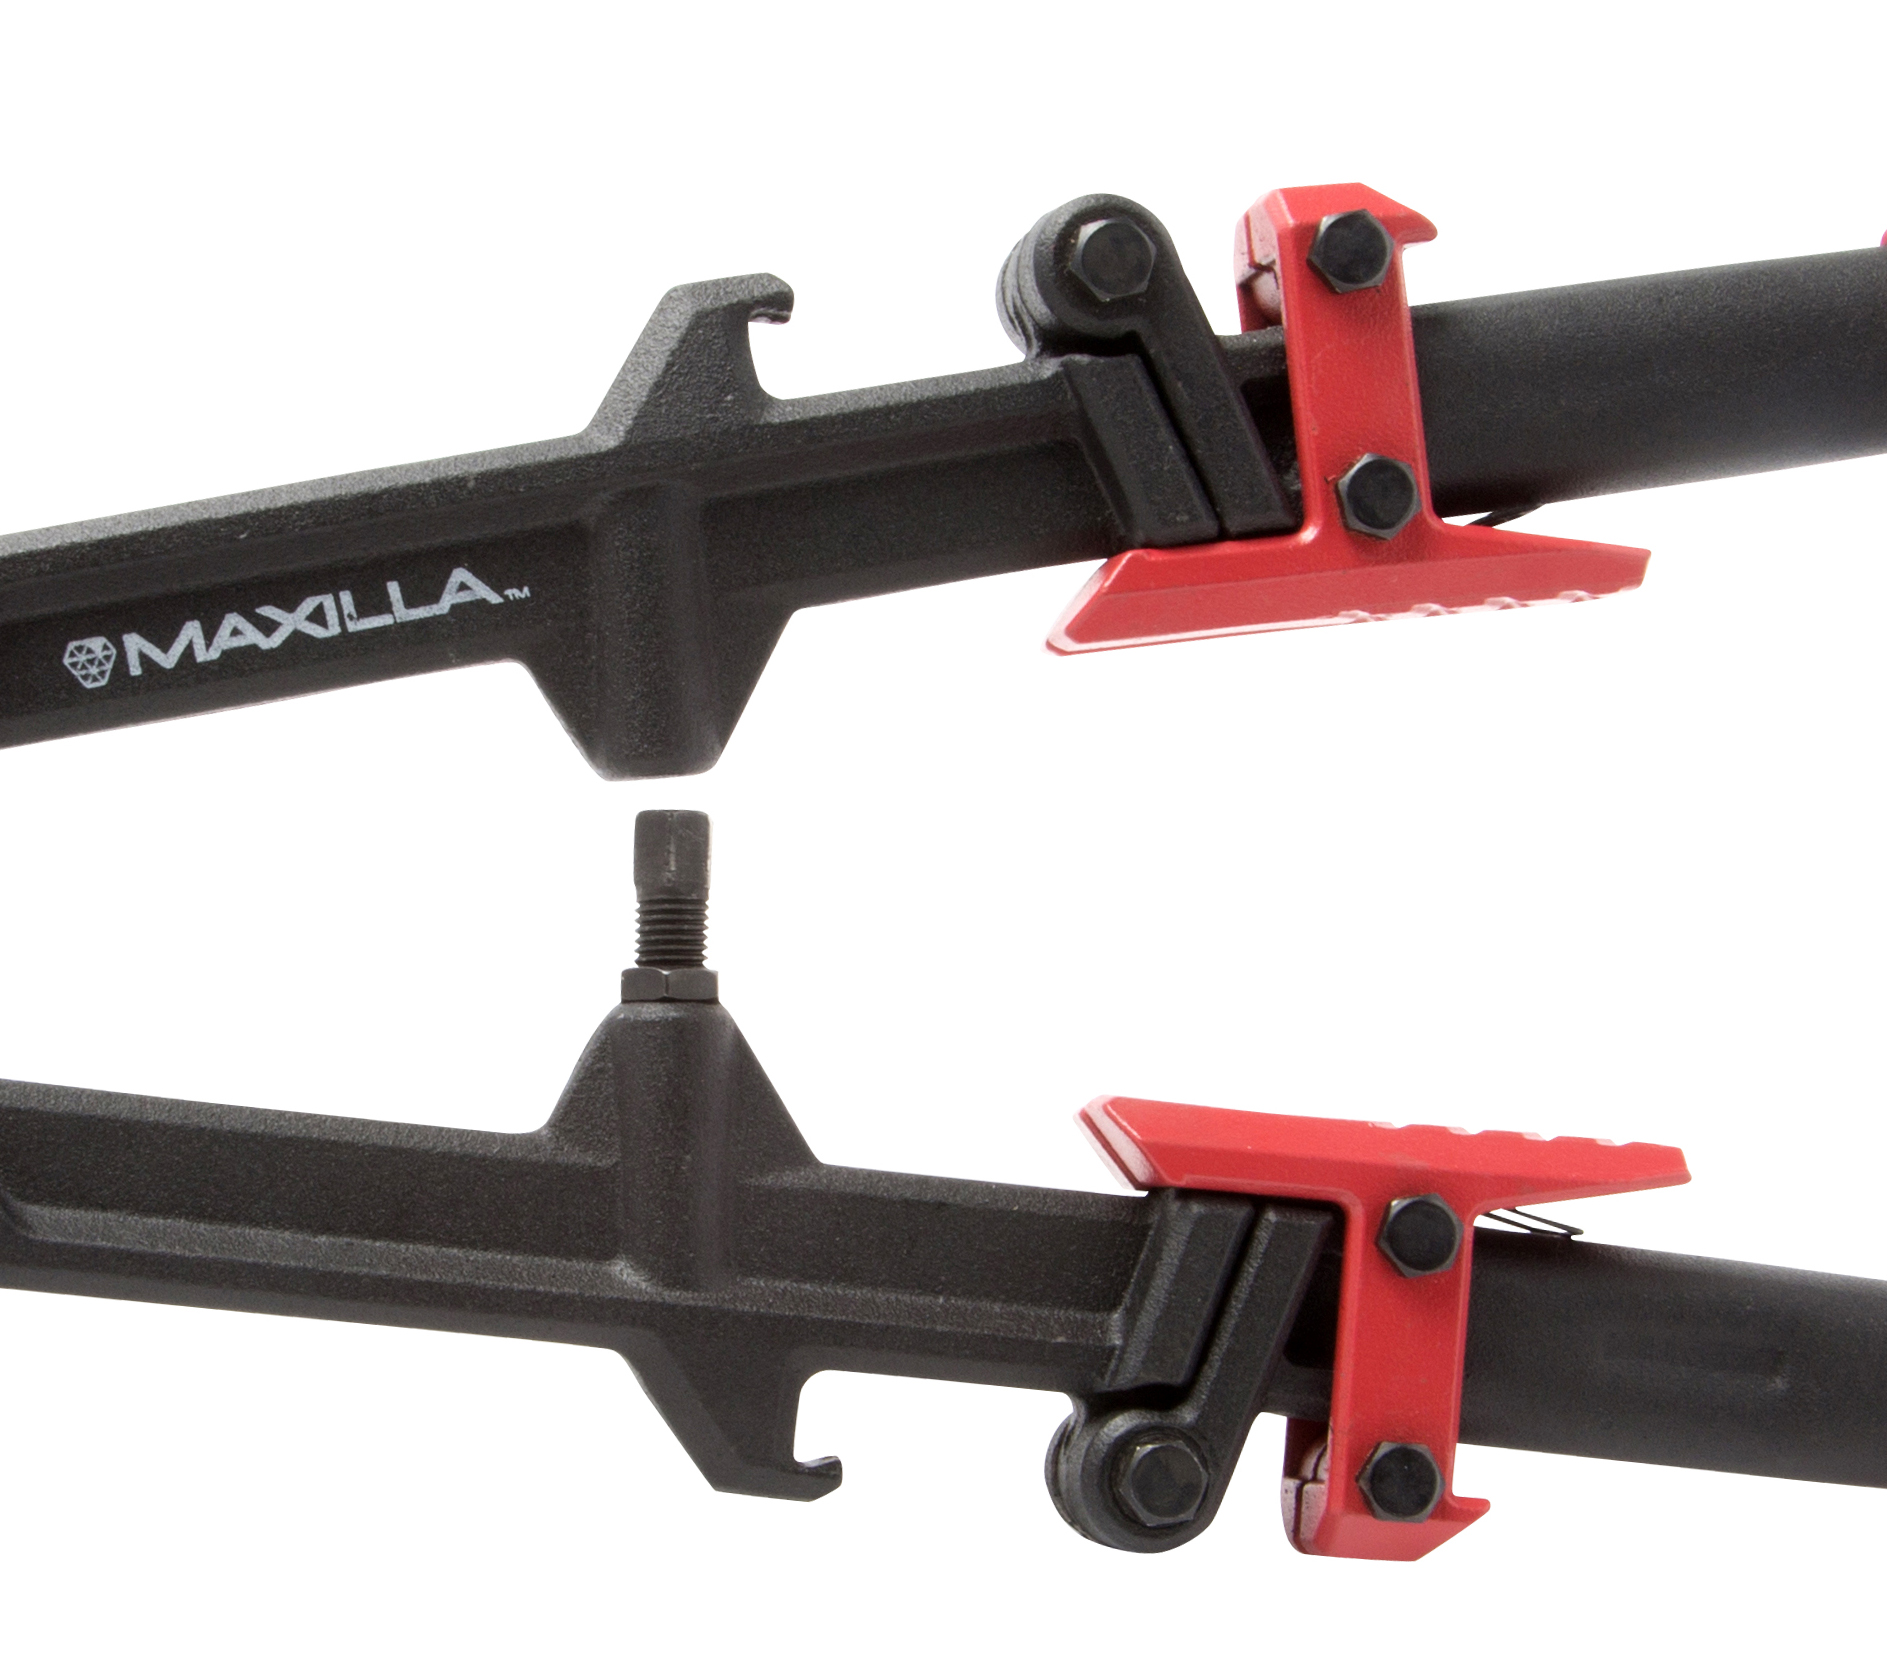 Maxilla 93908 Professional Heavy Duty Folding Steel Metal